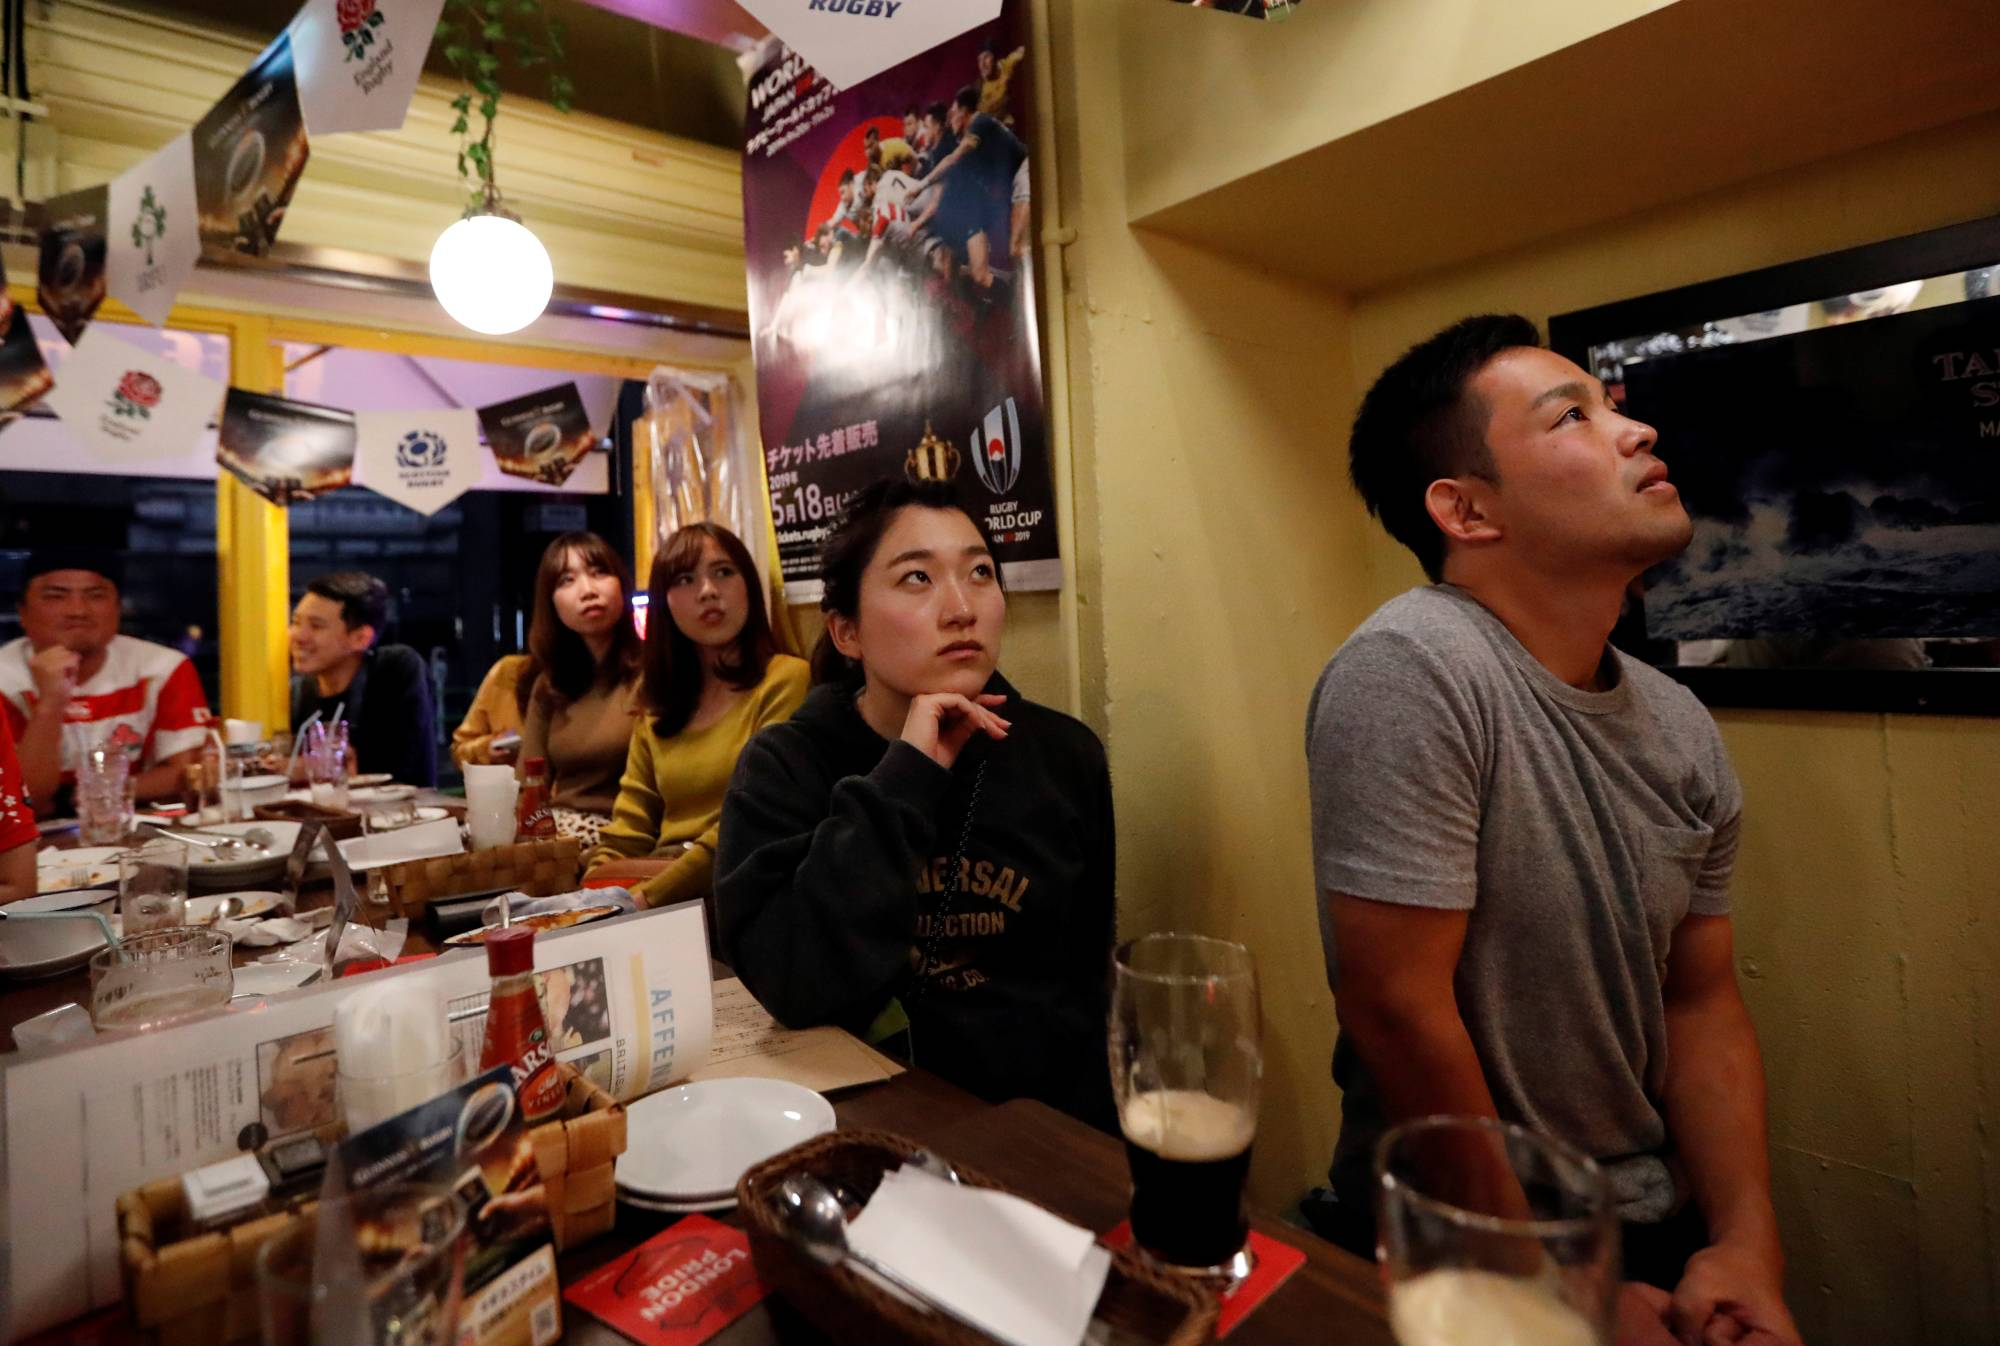 Fans watch the Rugby World Cup quarterfinal between Japan and South Africa in a bar in Tokyo on Oct. 20, 2019. | REUTERS